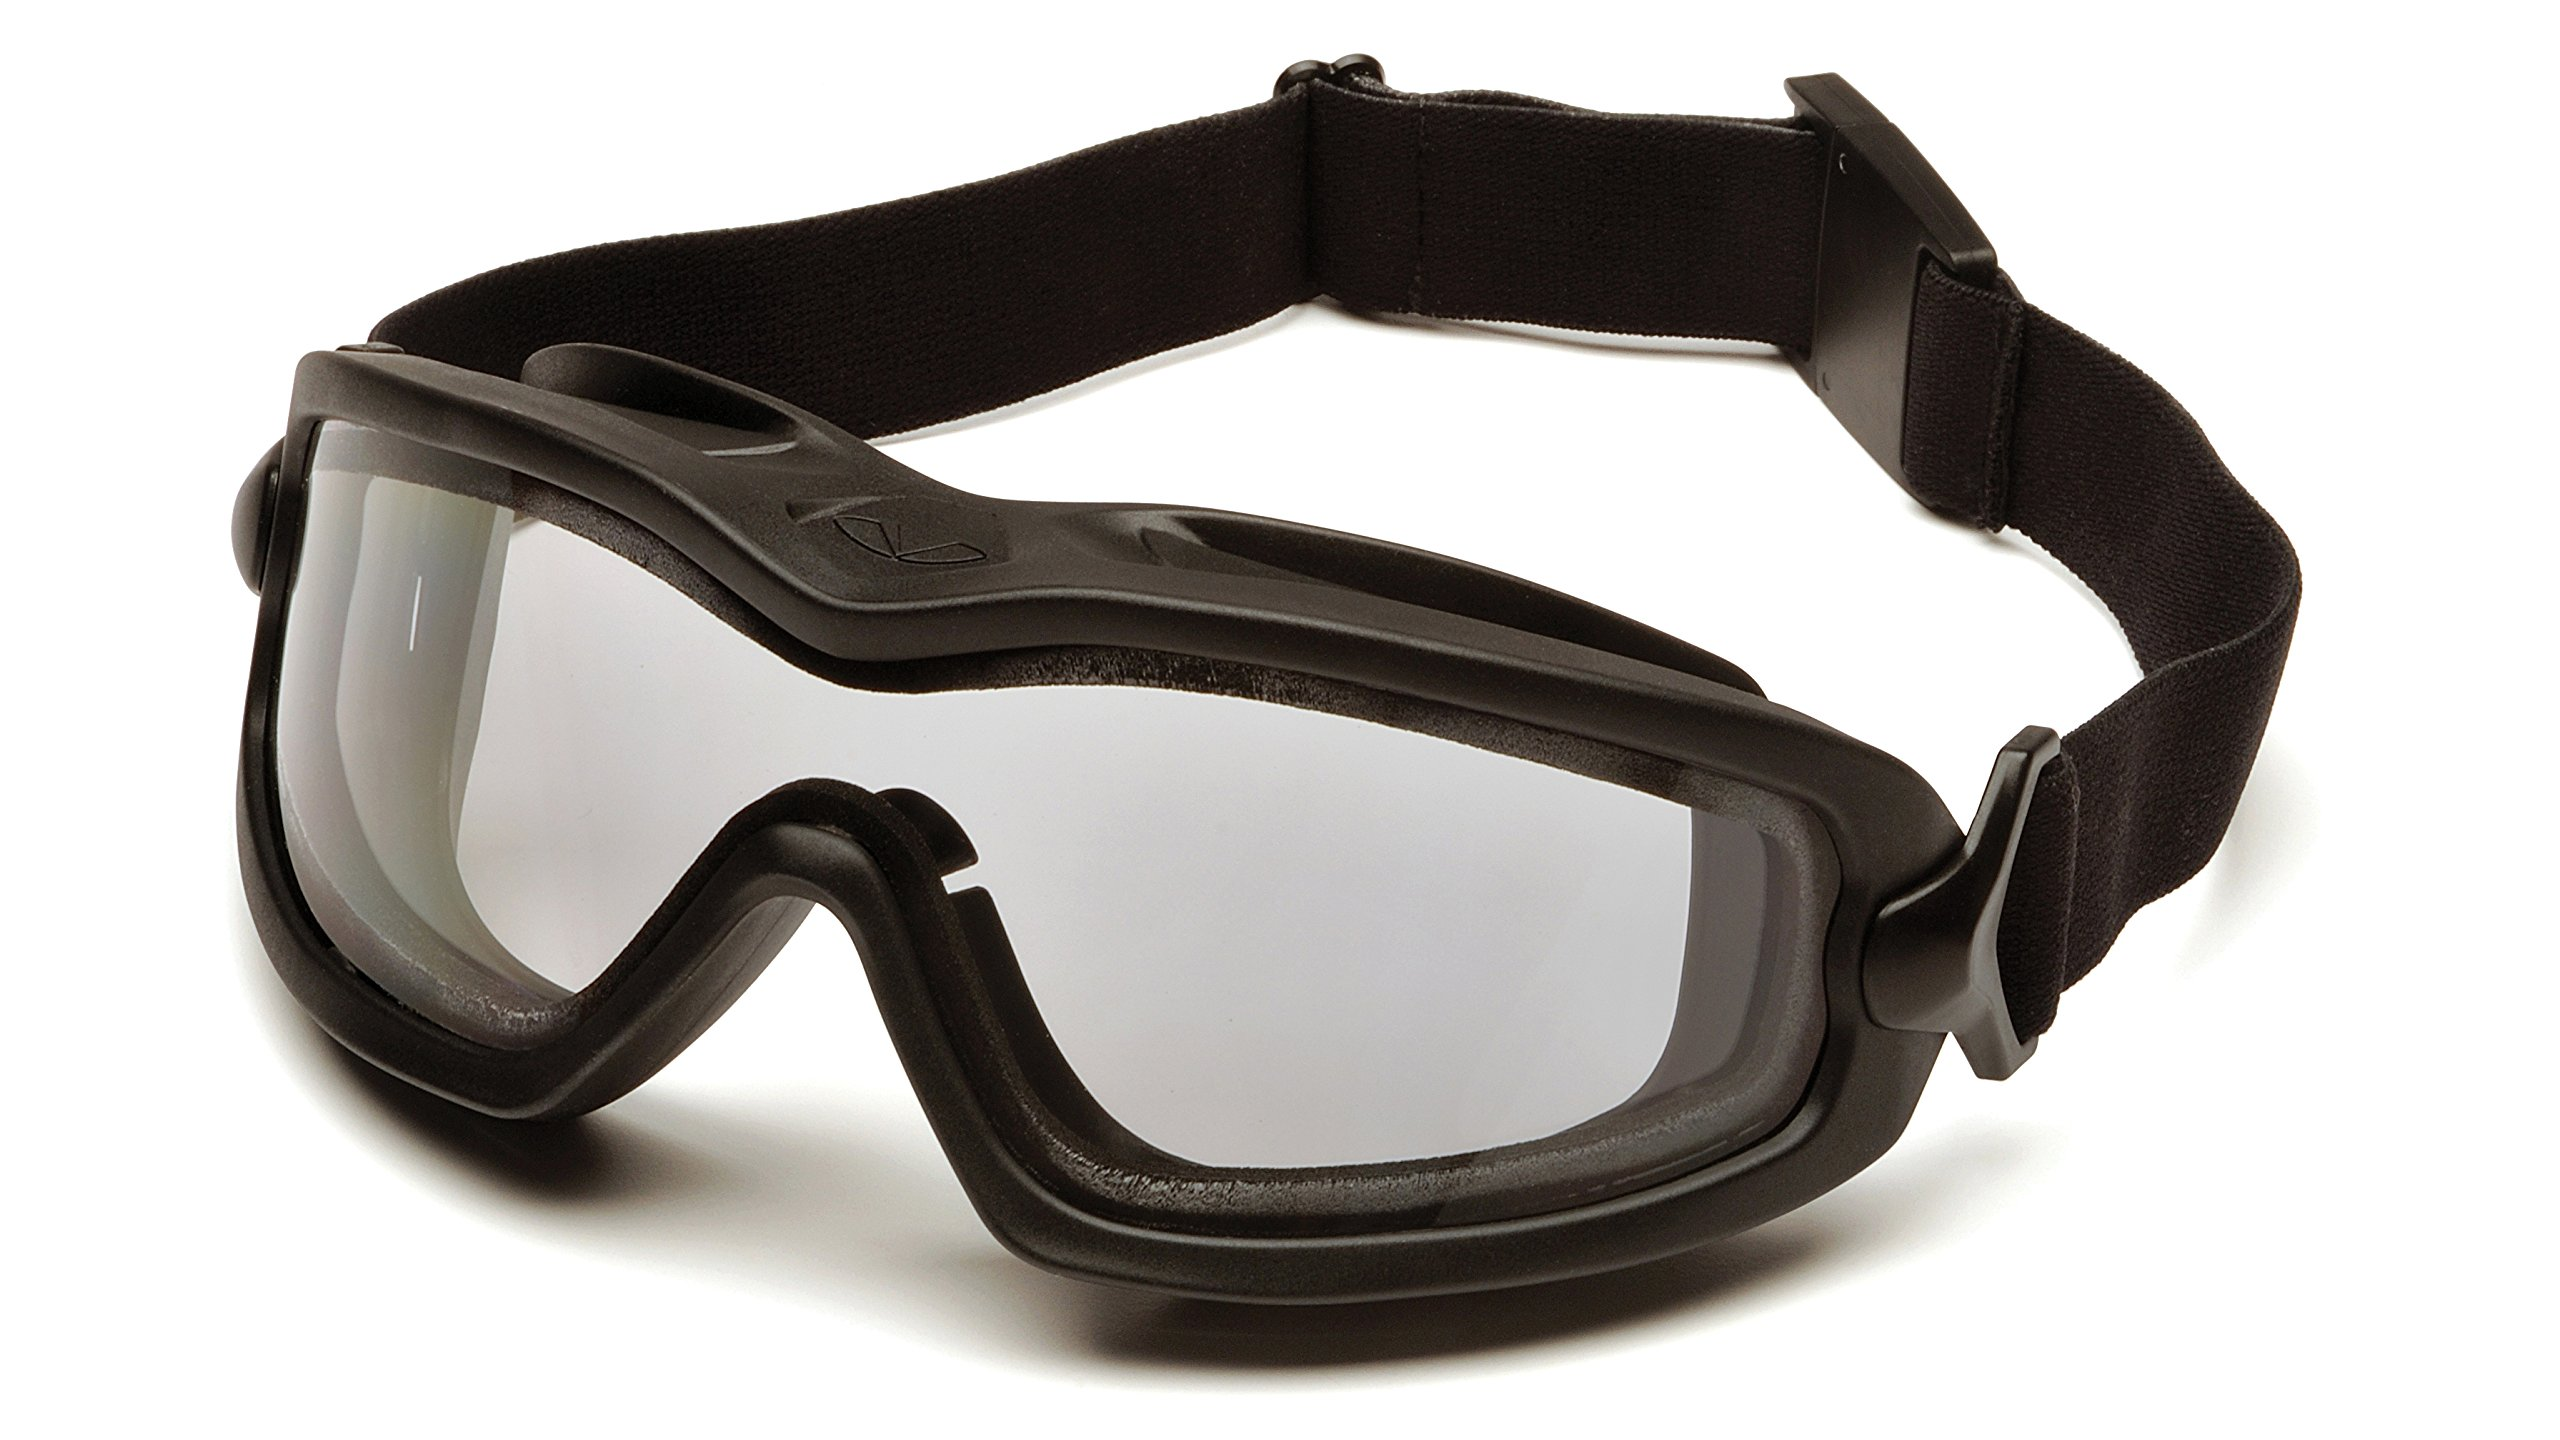 Pyramex V2G Safety Goggles with Adjustable Strap, Black Frame, Dual Clear H2X Anti-Fog Lens by Pyramex Safety (Image #2)